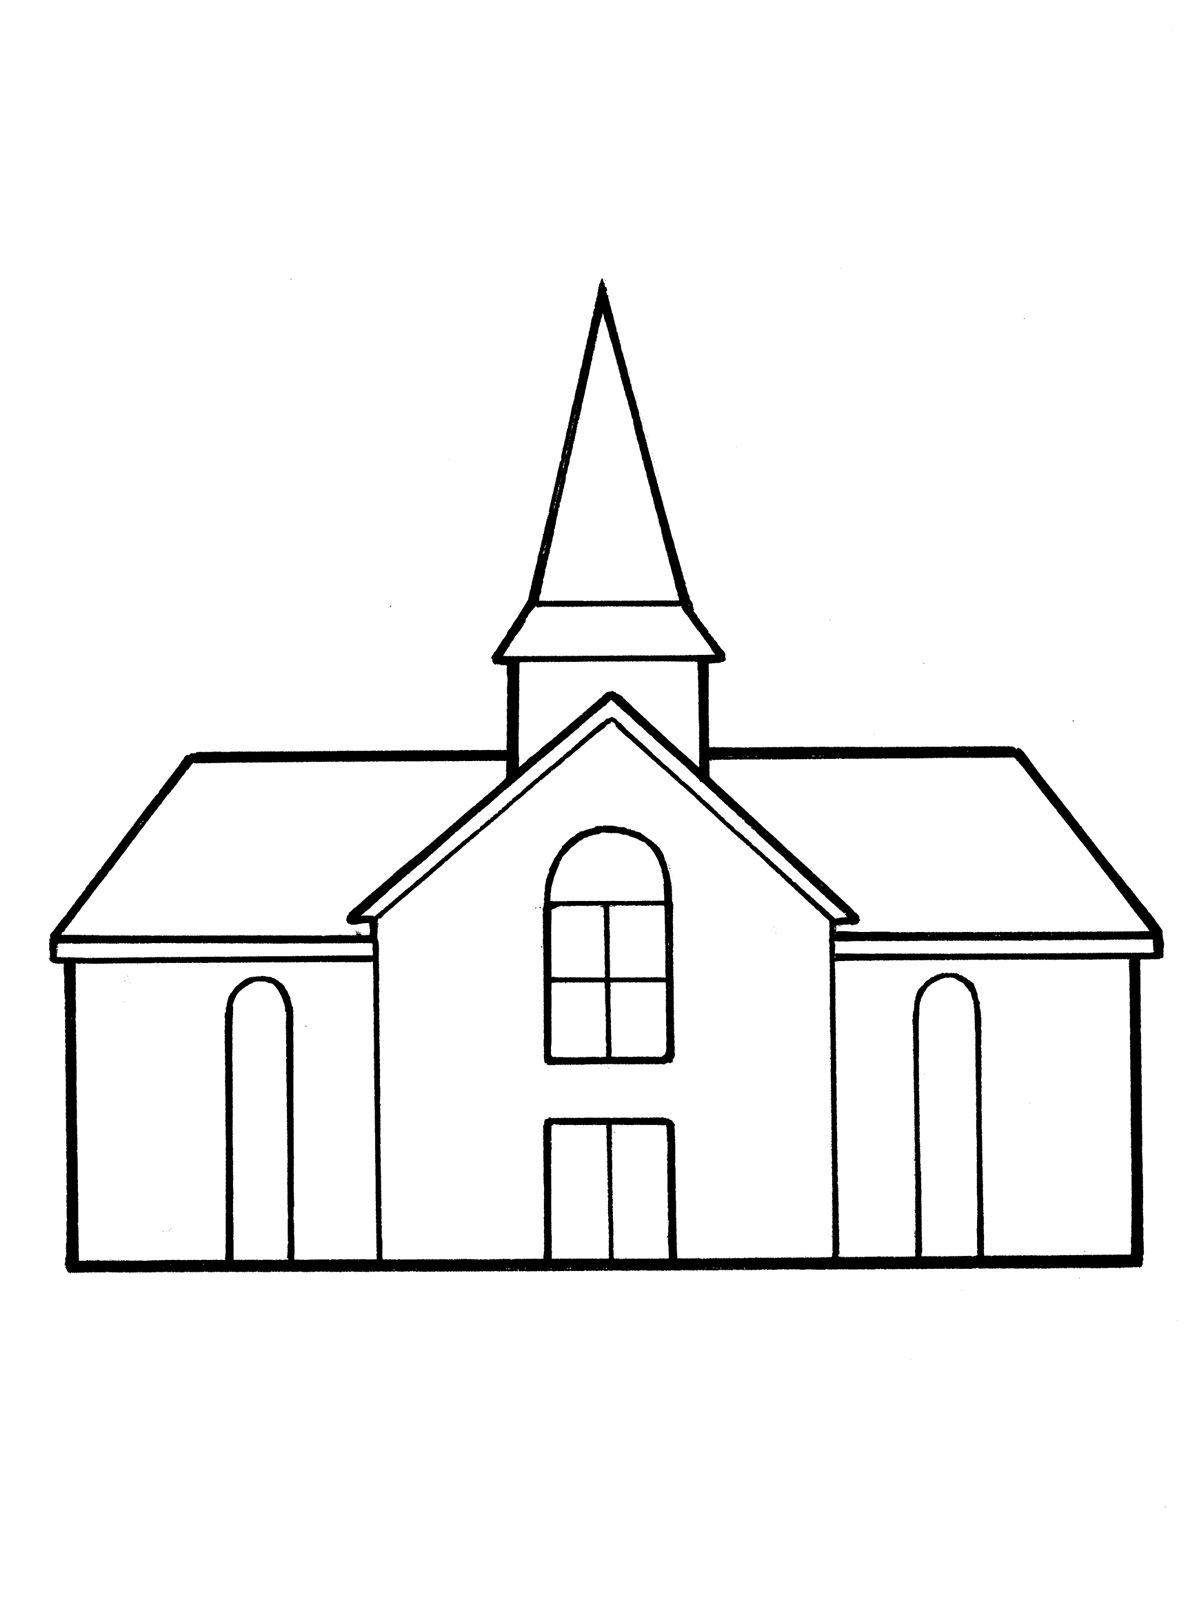 A line drawing of a meetinghouse from the nursery manual